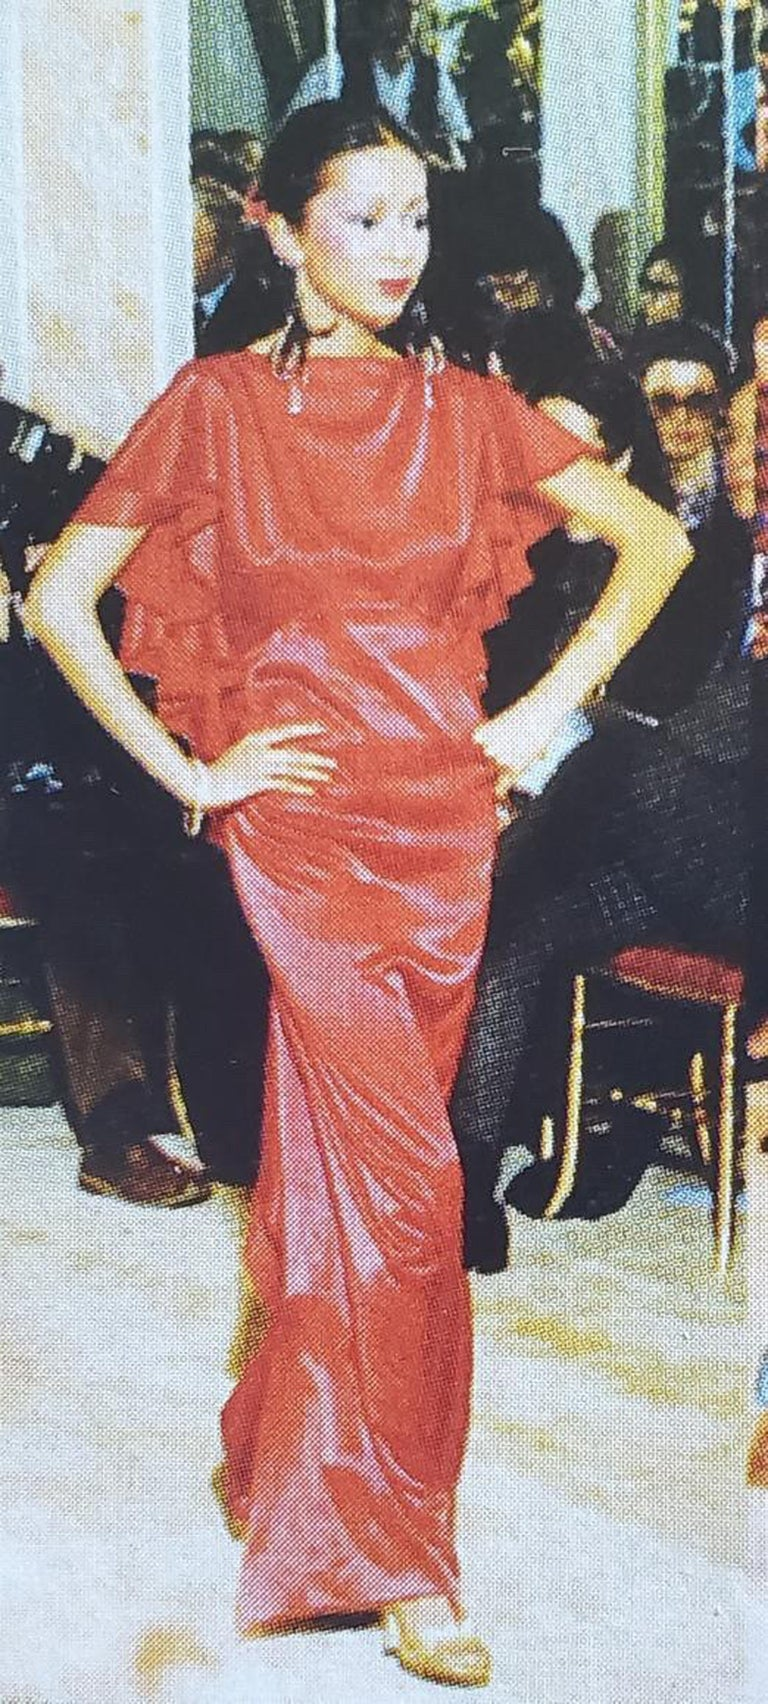 Gorgeous Yves Saint Laurent documented couture gown from his iconic 1979 spring-summer collection. We found the garment to be just as fabulous worn backwards so we styled both ways for you! It is insanely chic with its unique flamenco flutter. The